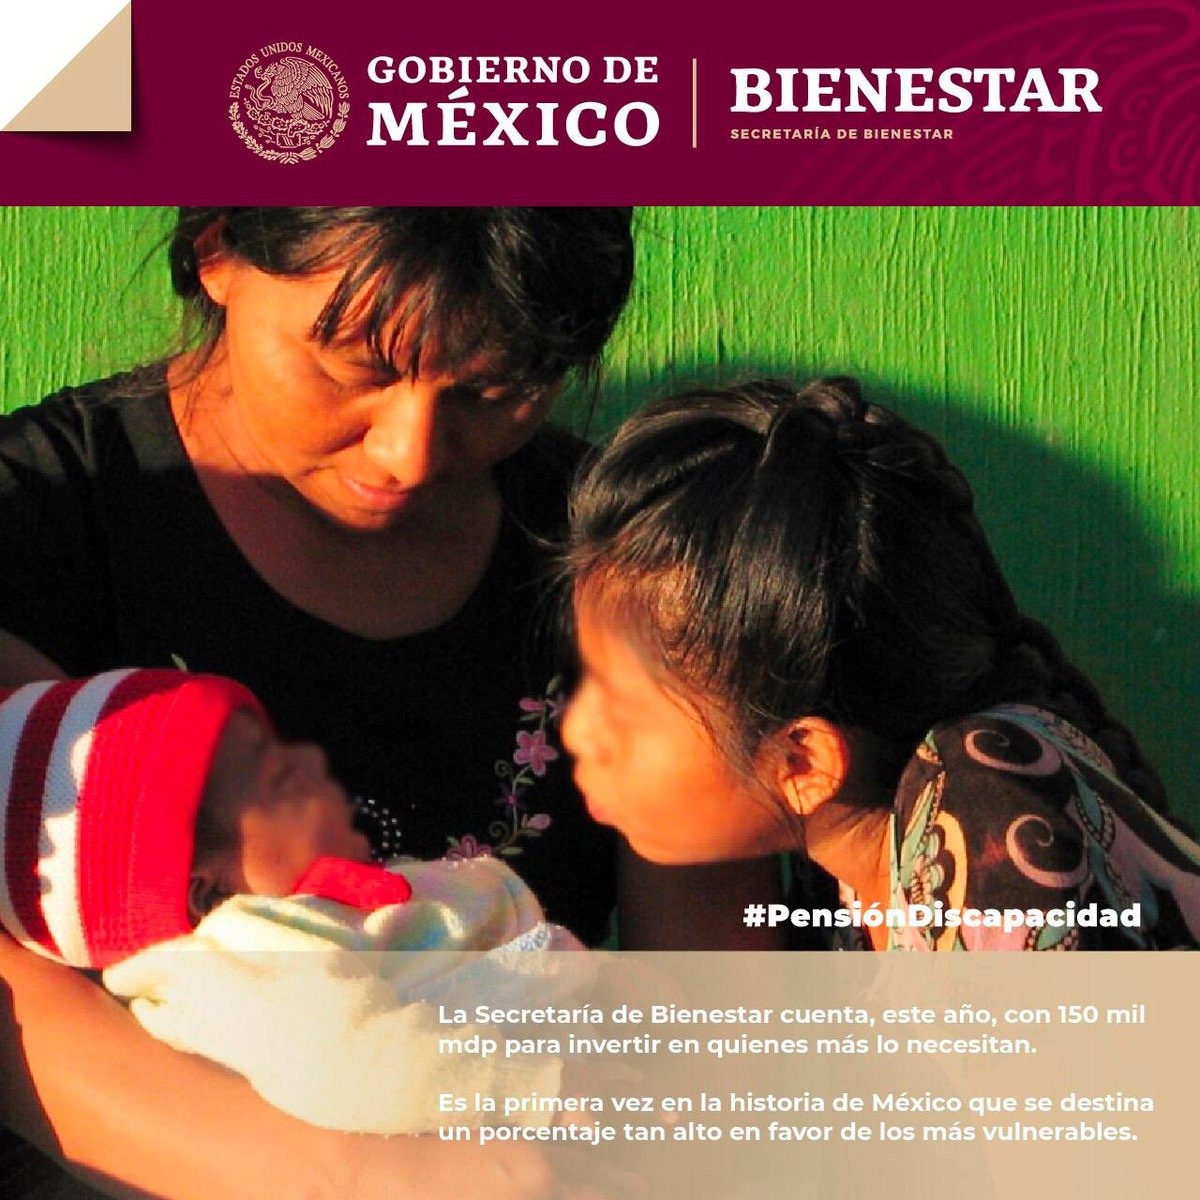 Bienestar's photo on personas con discapacidad